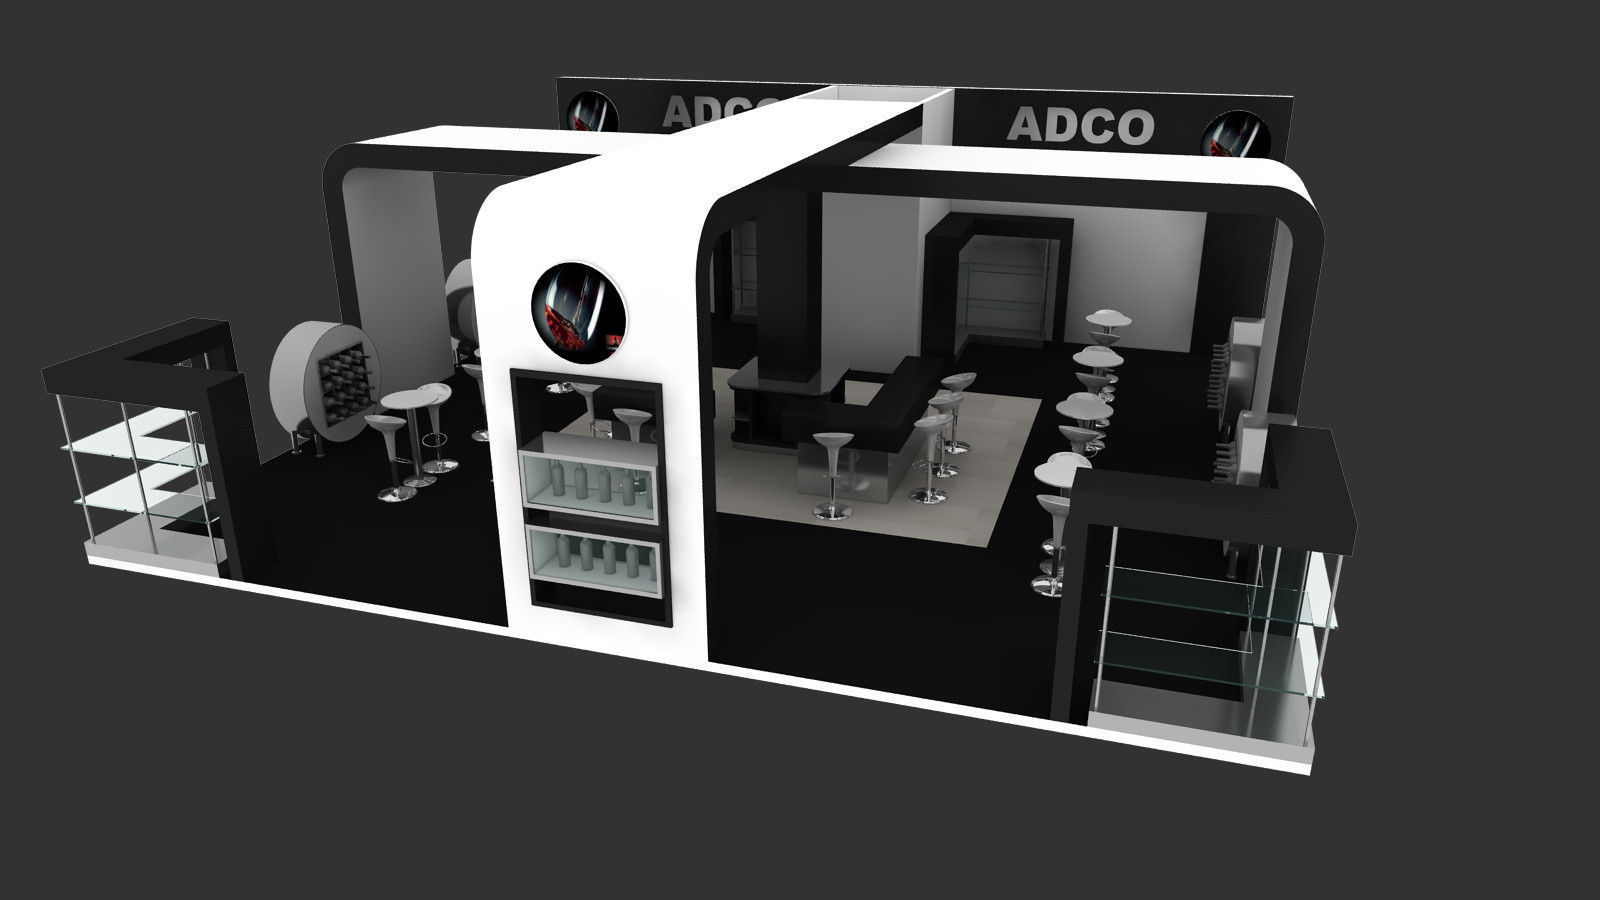 Exhibition Stand Items : Adco exhibition stand design d model animated